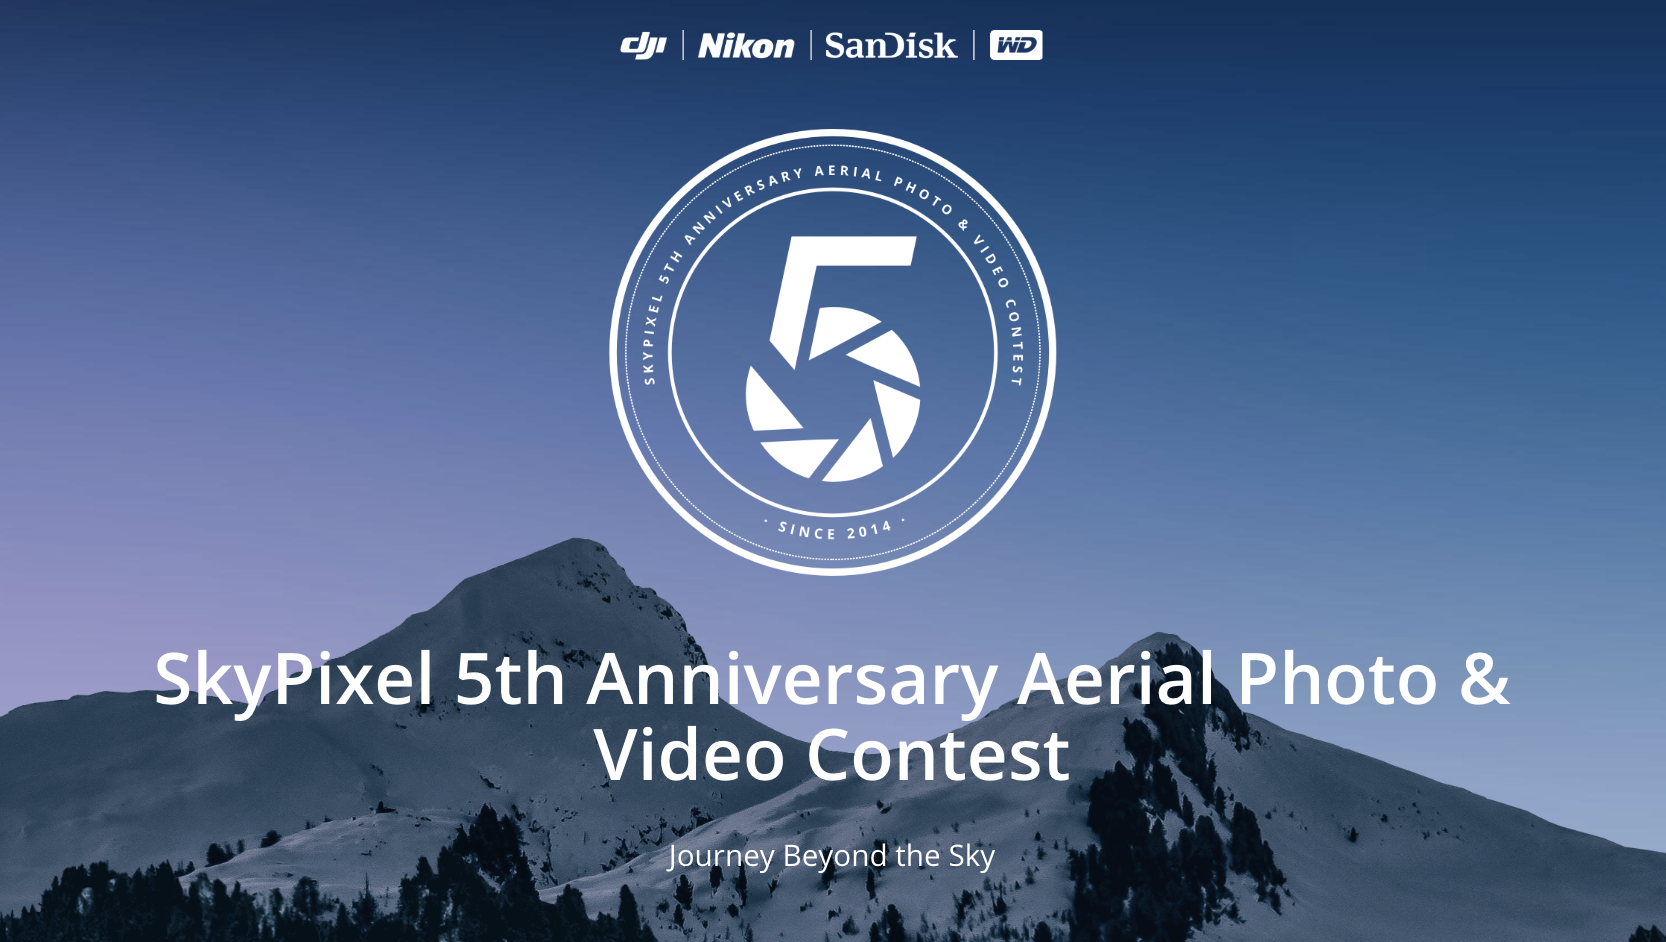 DJI and SkyPixel launch contest to celebrate 5th anniversary